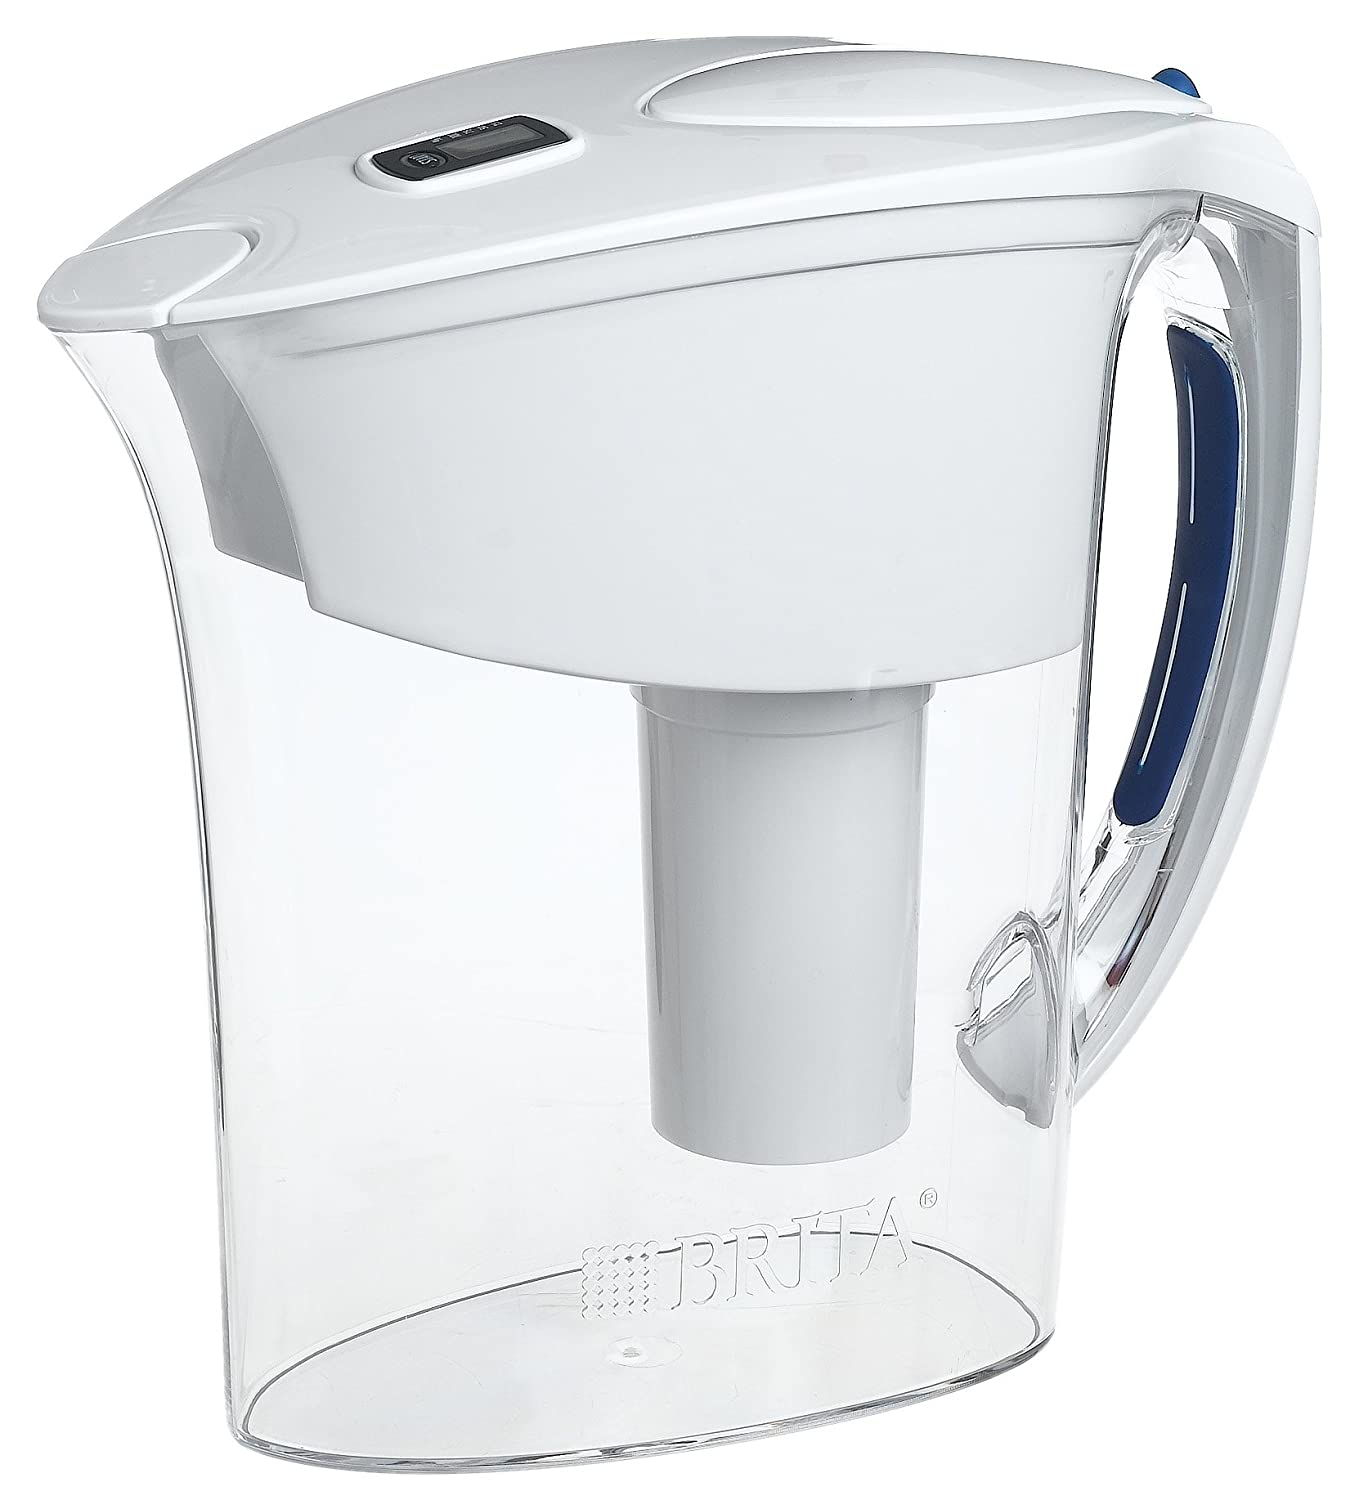 Amazon.com: Brita 42558 Aqualux Water Pitcher: Pitcher Water Filters:  Kitchen U0026 Dining